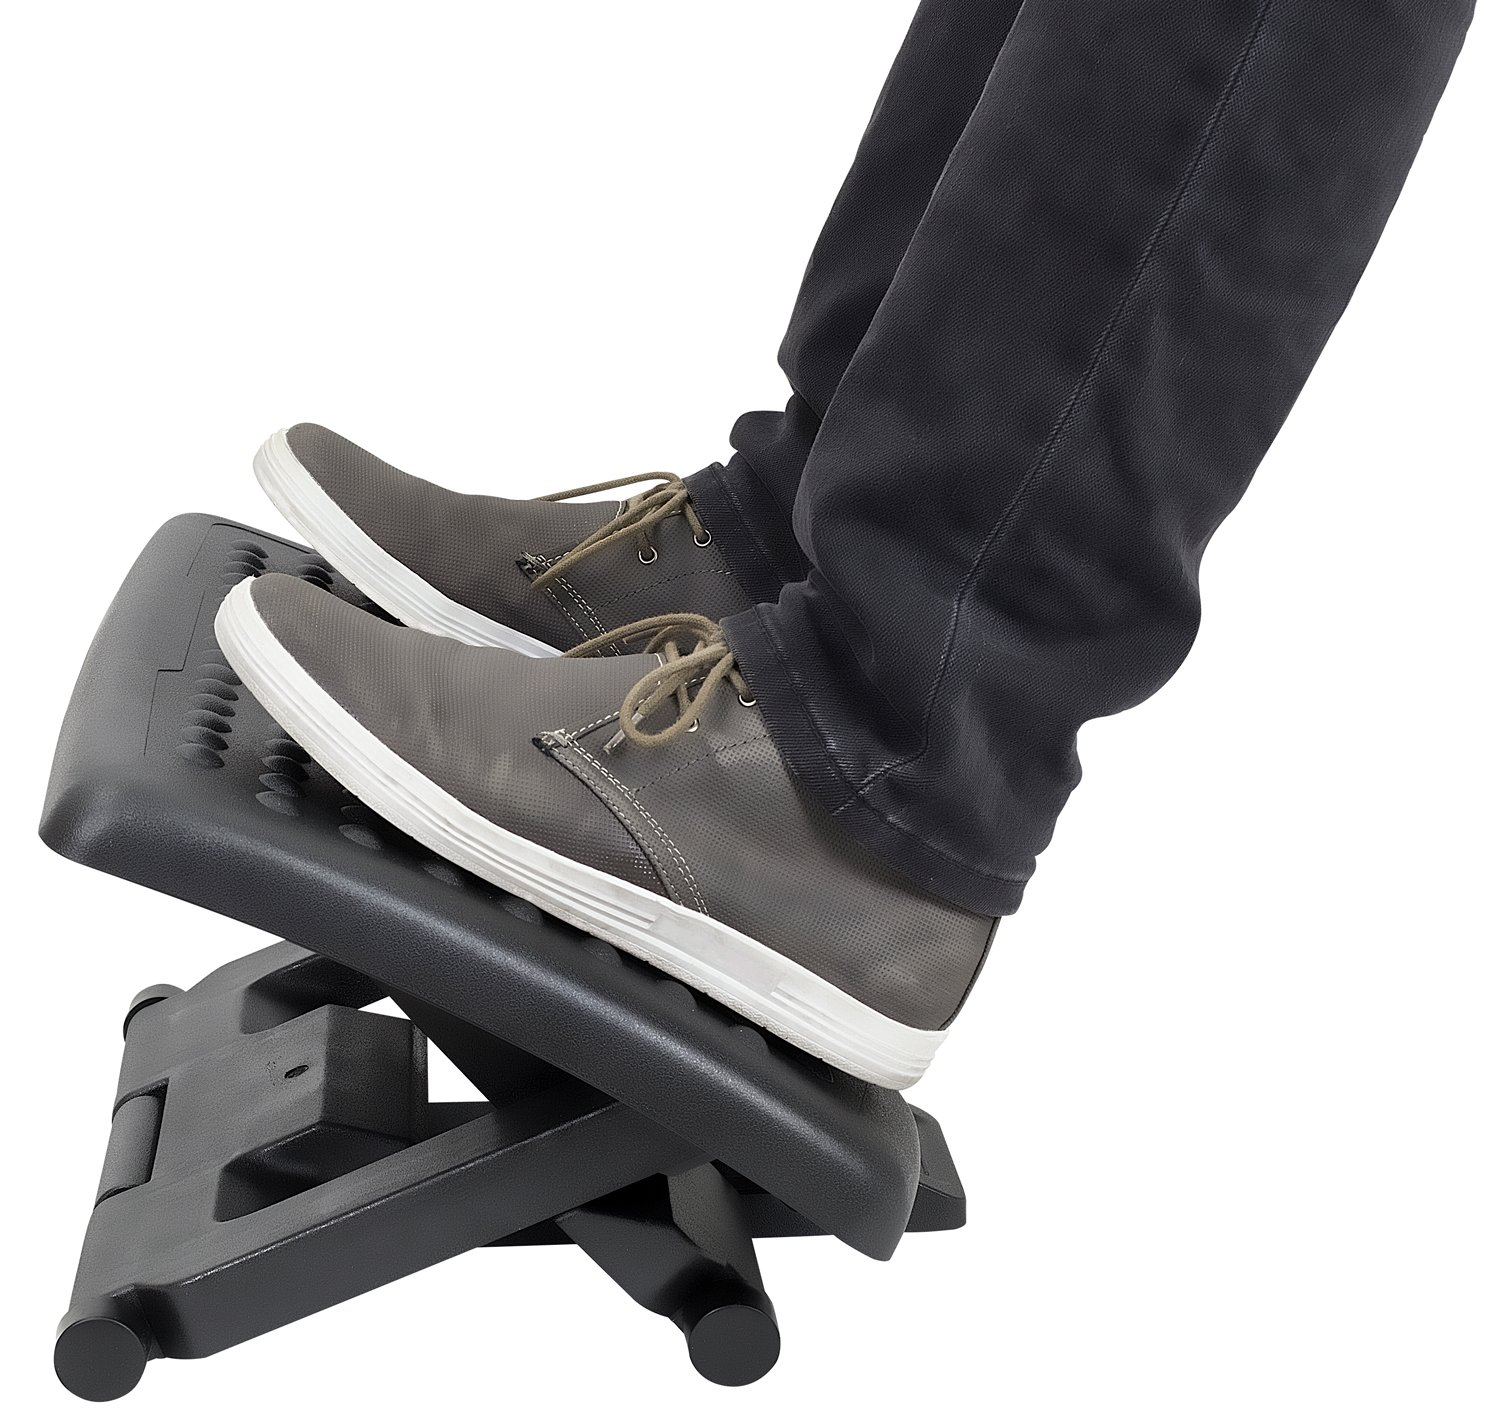 Mount-It! Ergonomic Footrest with Massaging Rollers Adjustable Angle and Height Office Foot Rest Stool for Under Desk Support, 18 x 13 in, 3-Level Height Adjustment, Black